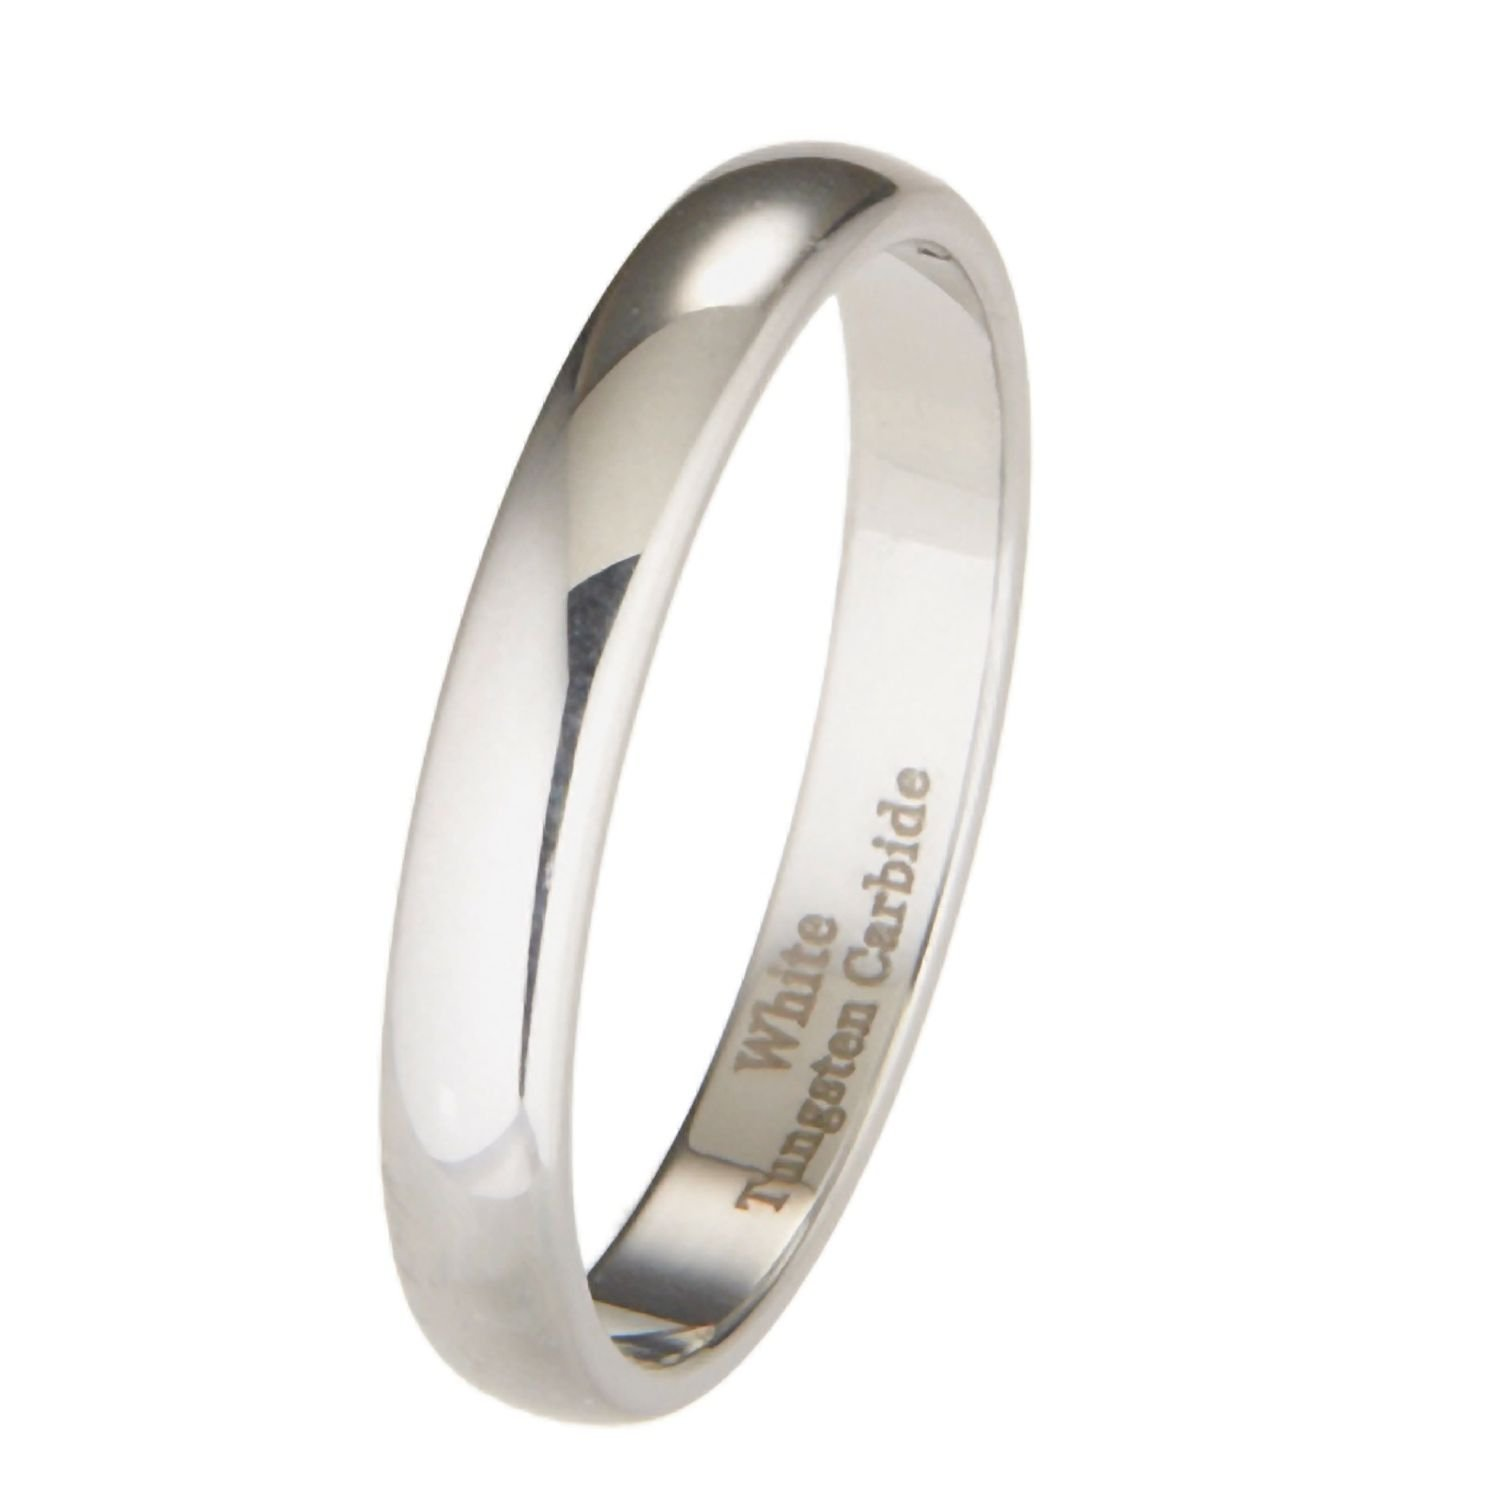 3mm White Tungsten Carbide MJ Wedding Band Polished Classic Ring MJ Metals Jewelry WTG-1743P